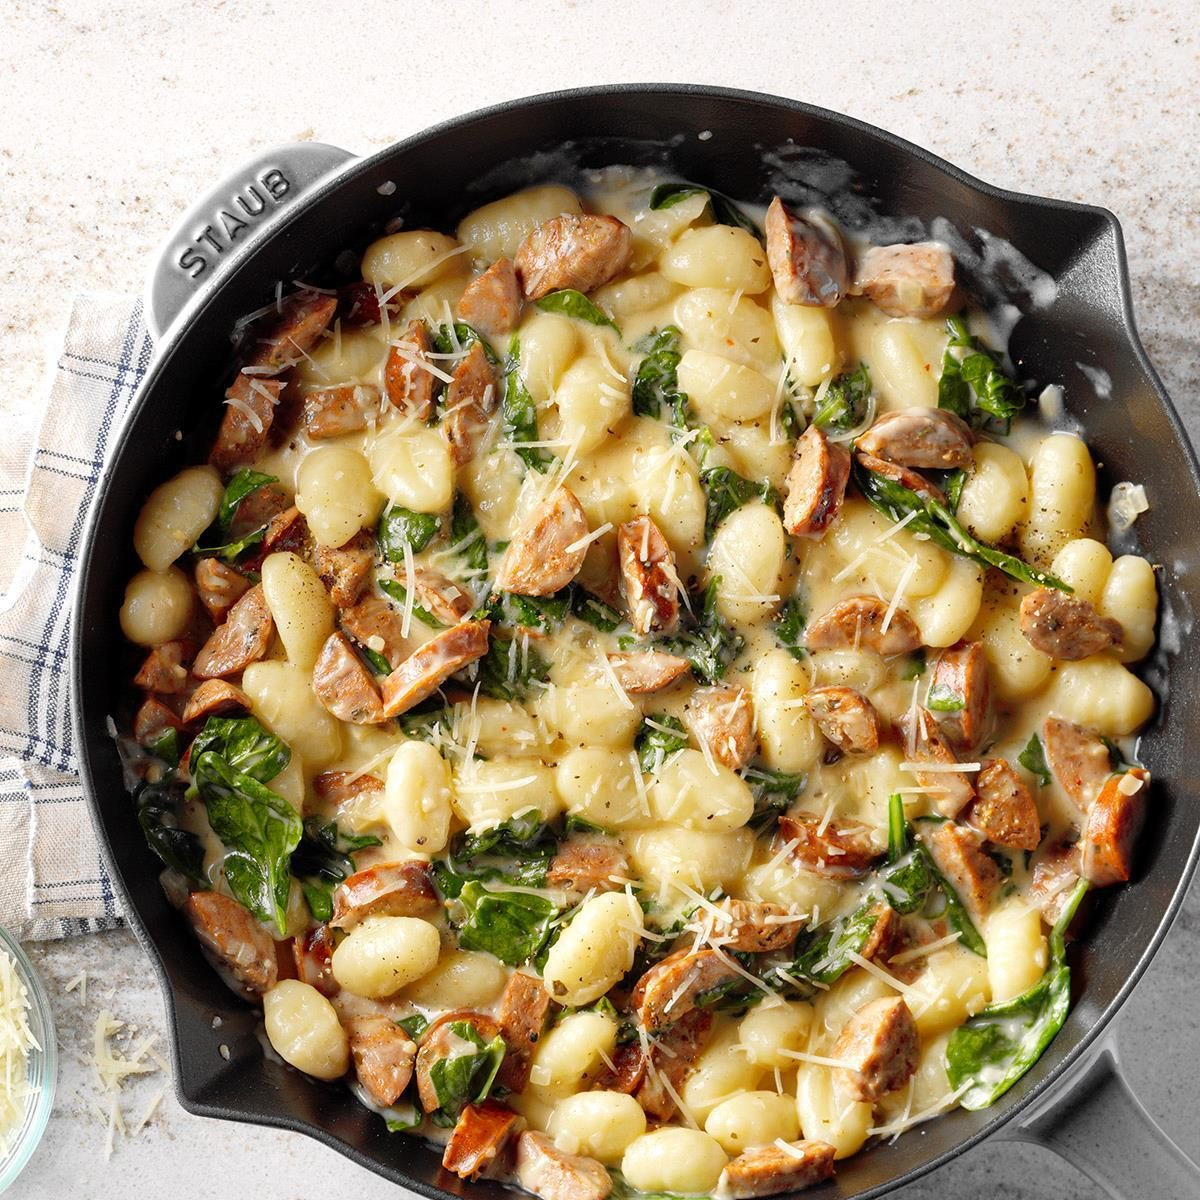 Gnocchi with Spinach and Chicken Sausage Recipe